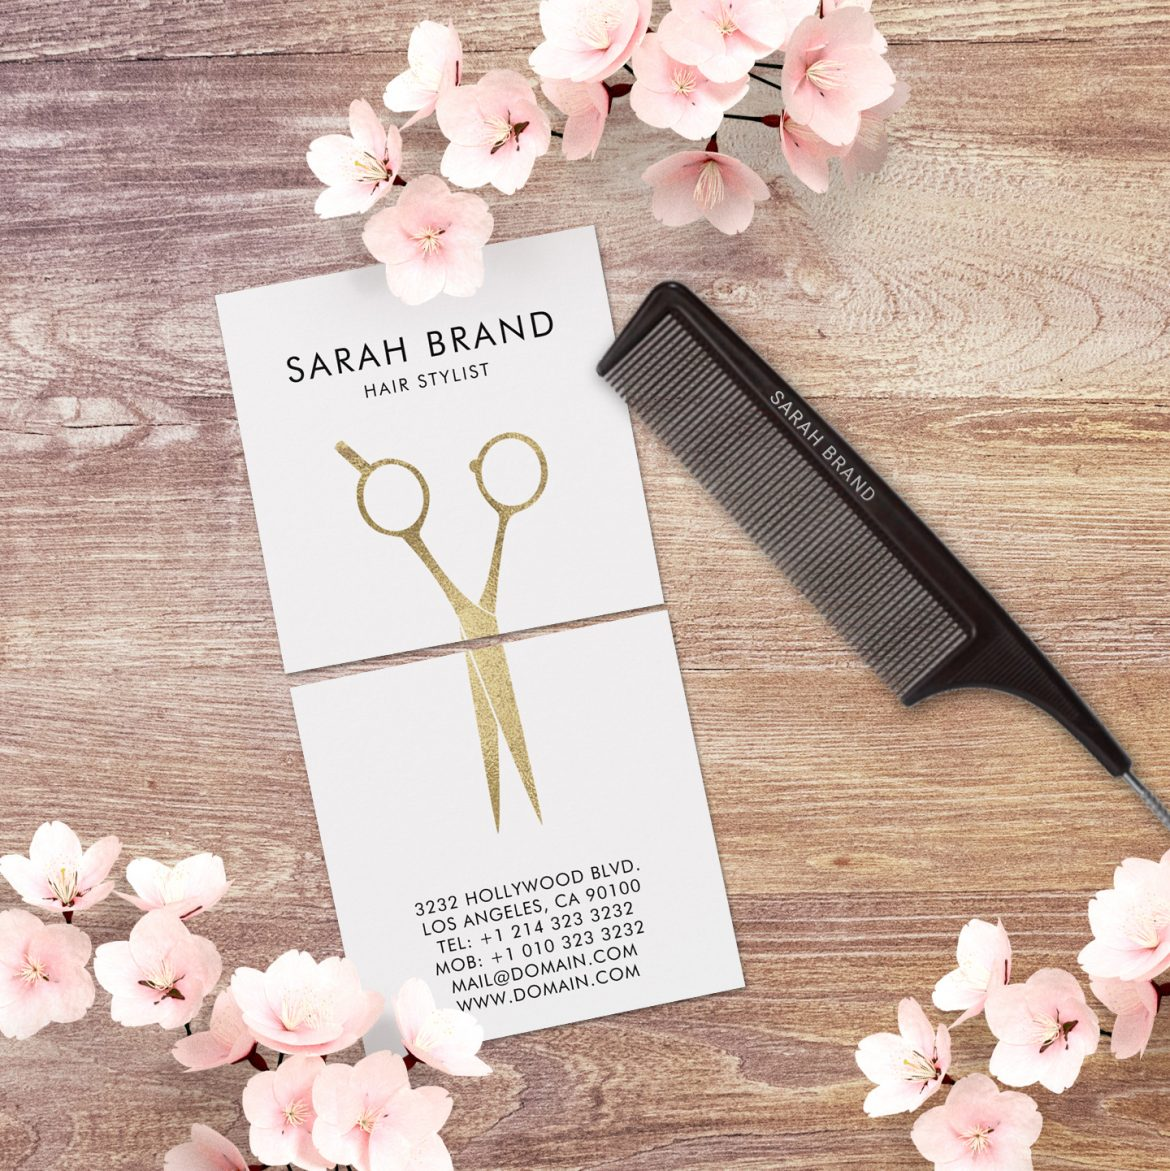 Faux Gold Foil Scissors Hair Stylist Square Business Card - J32 DESIGN